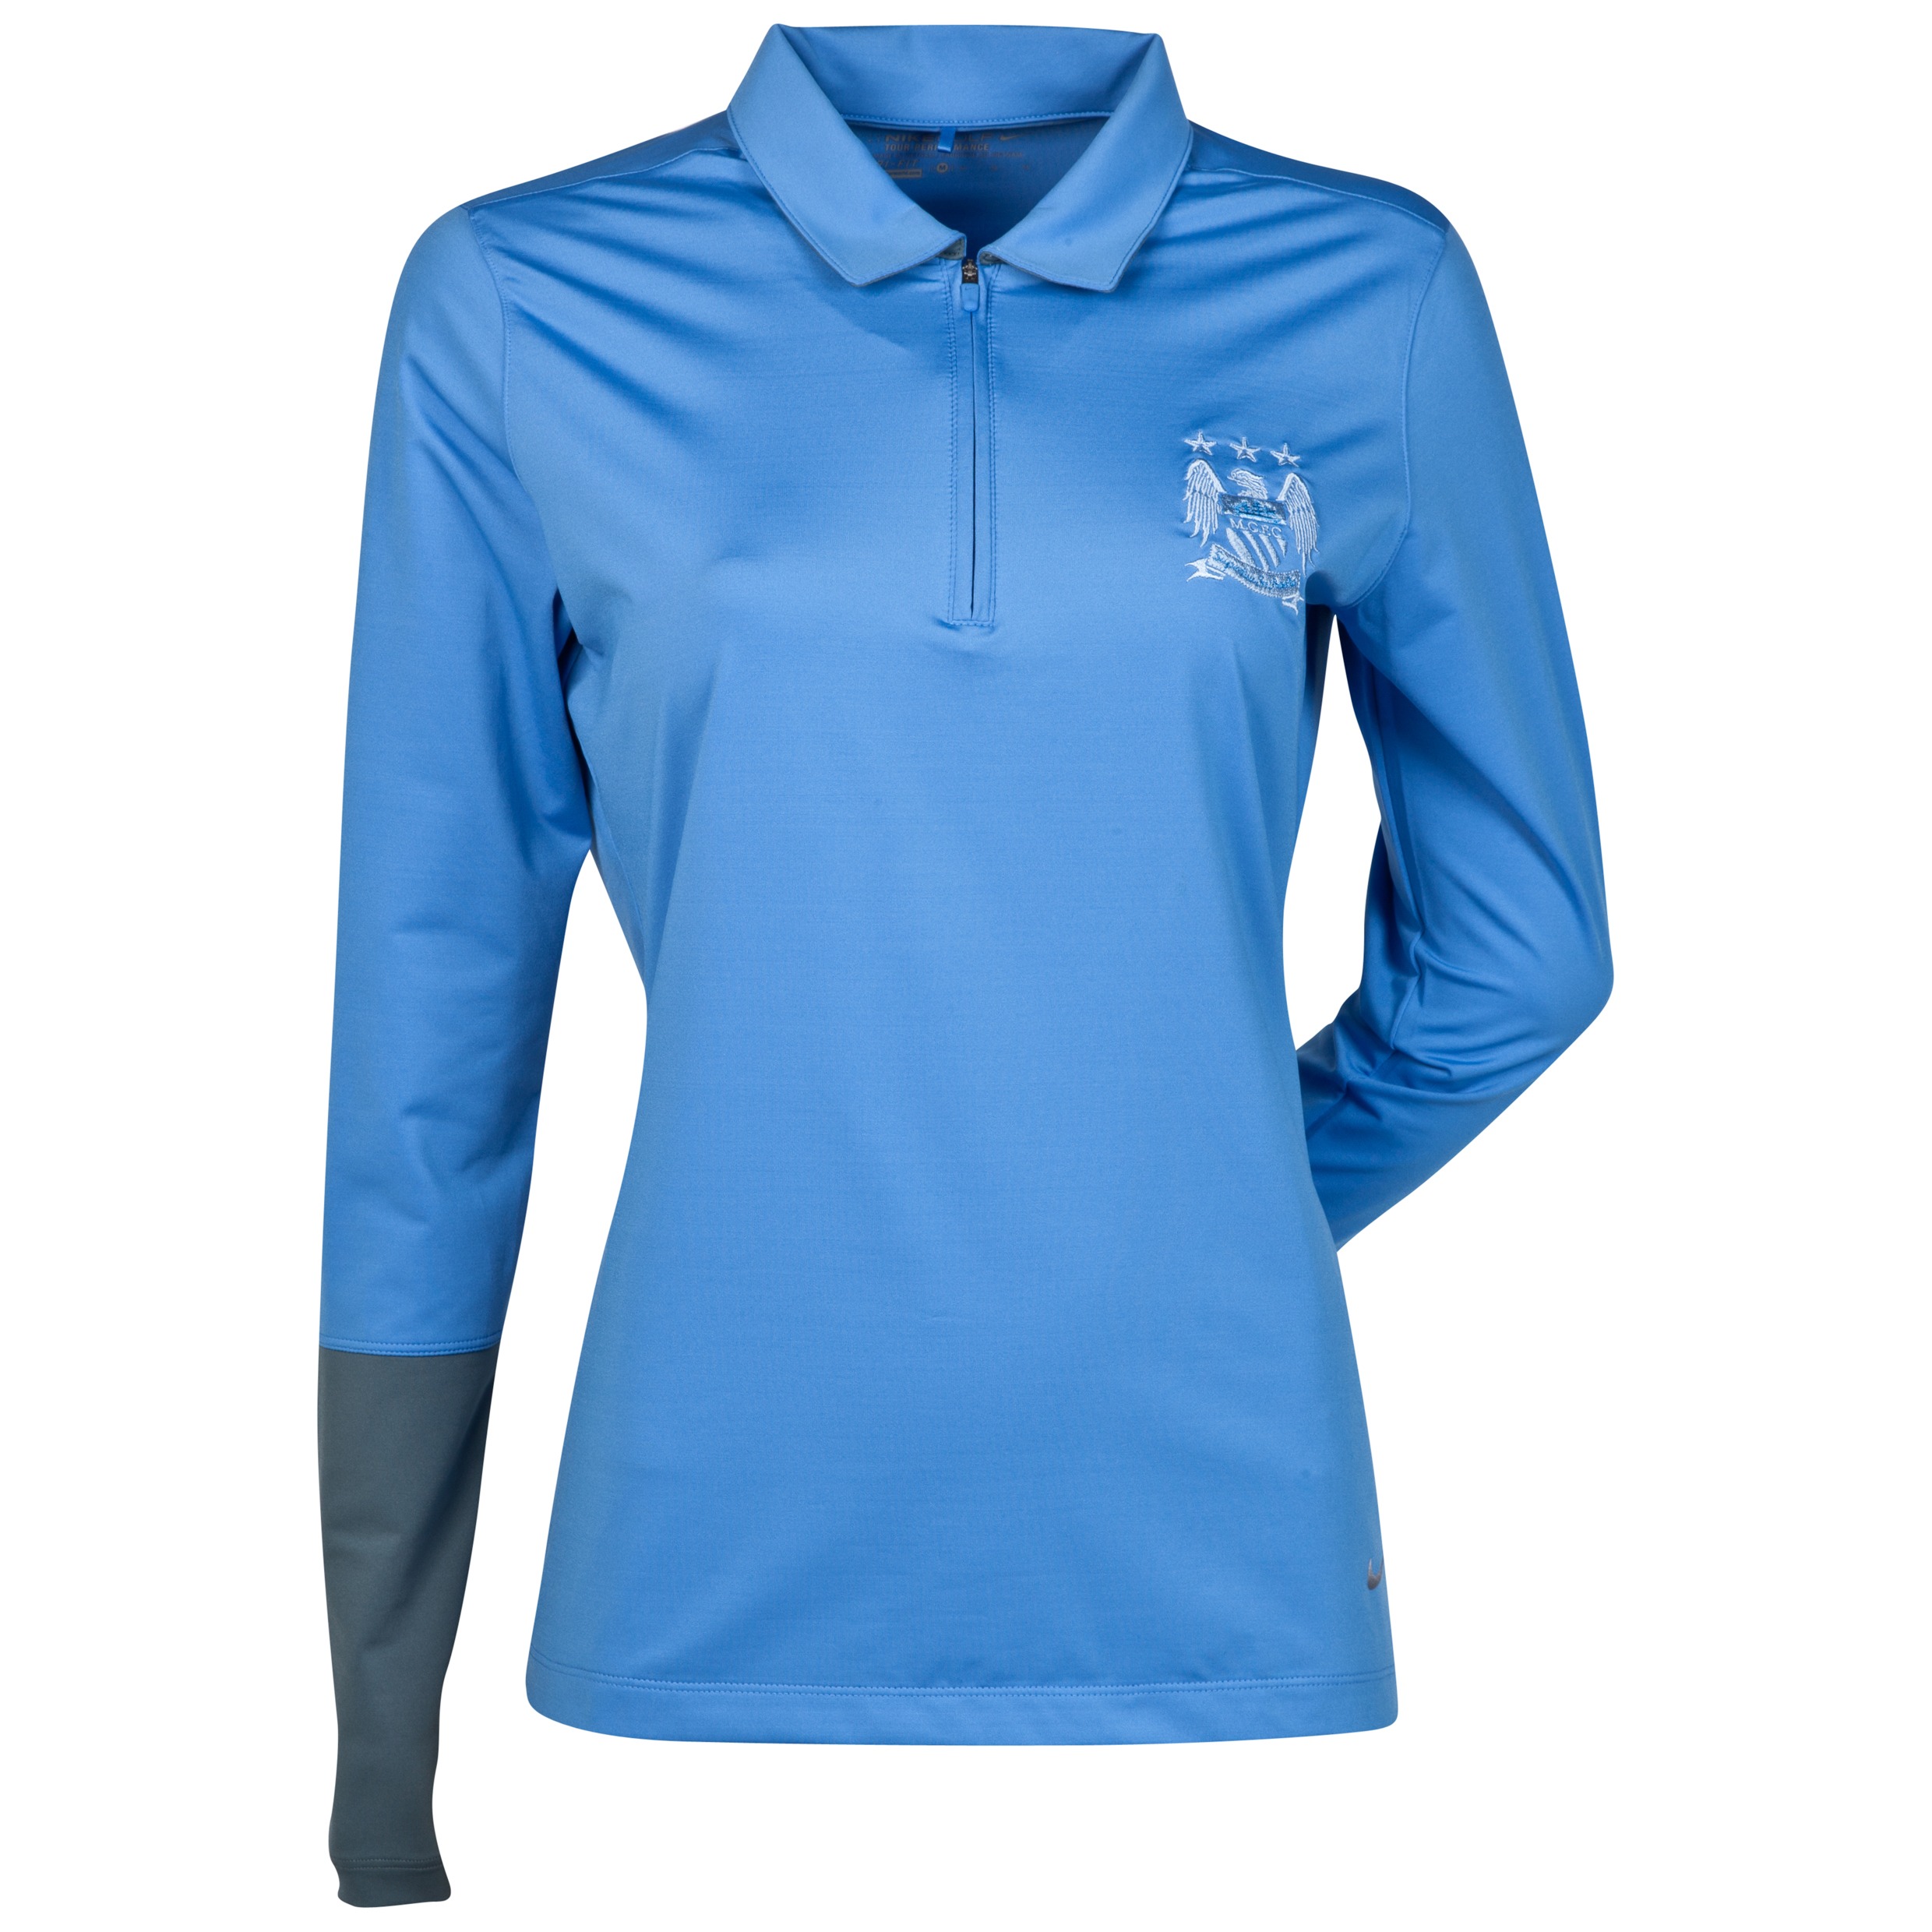 Manchester City Nike UV Novelty Polo - Long Sleeve - Womens Blue